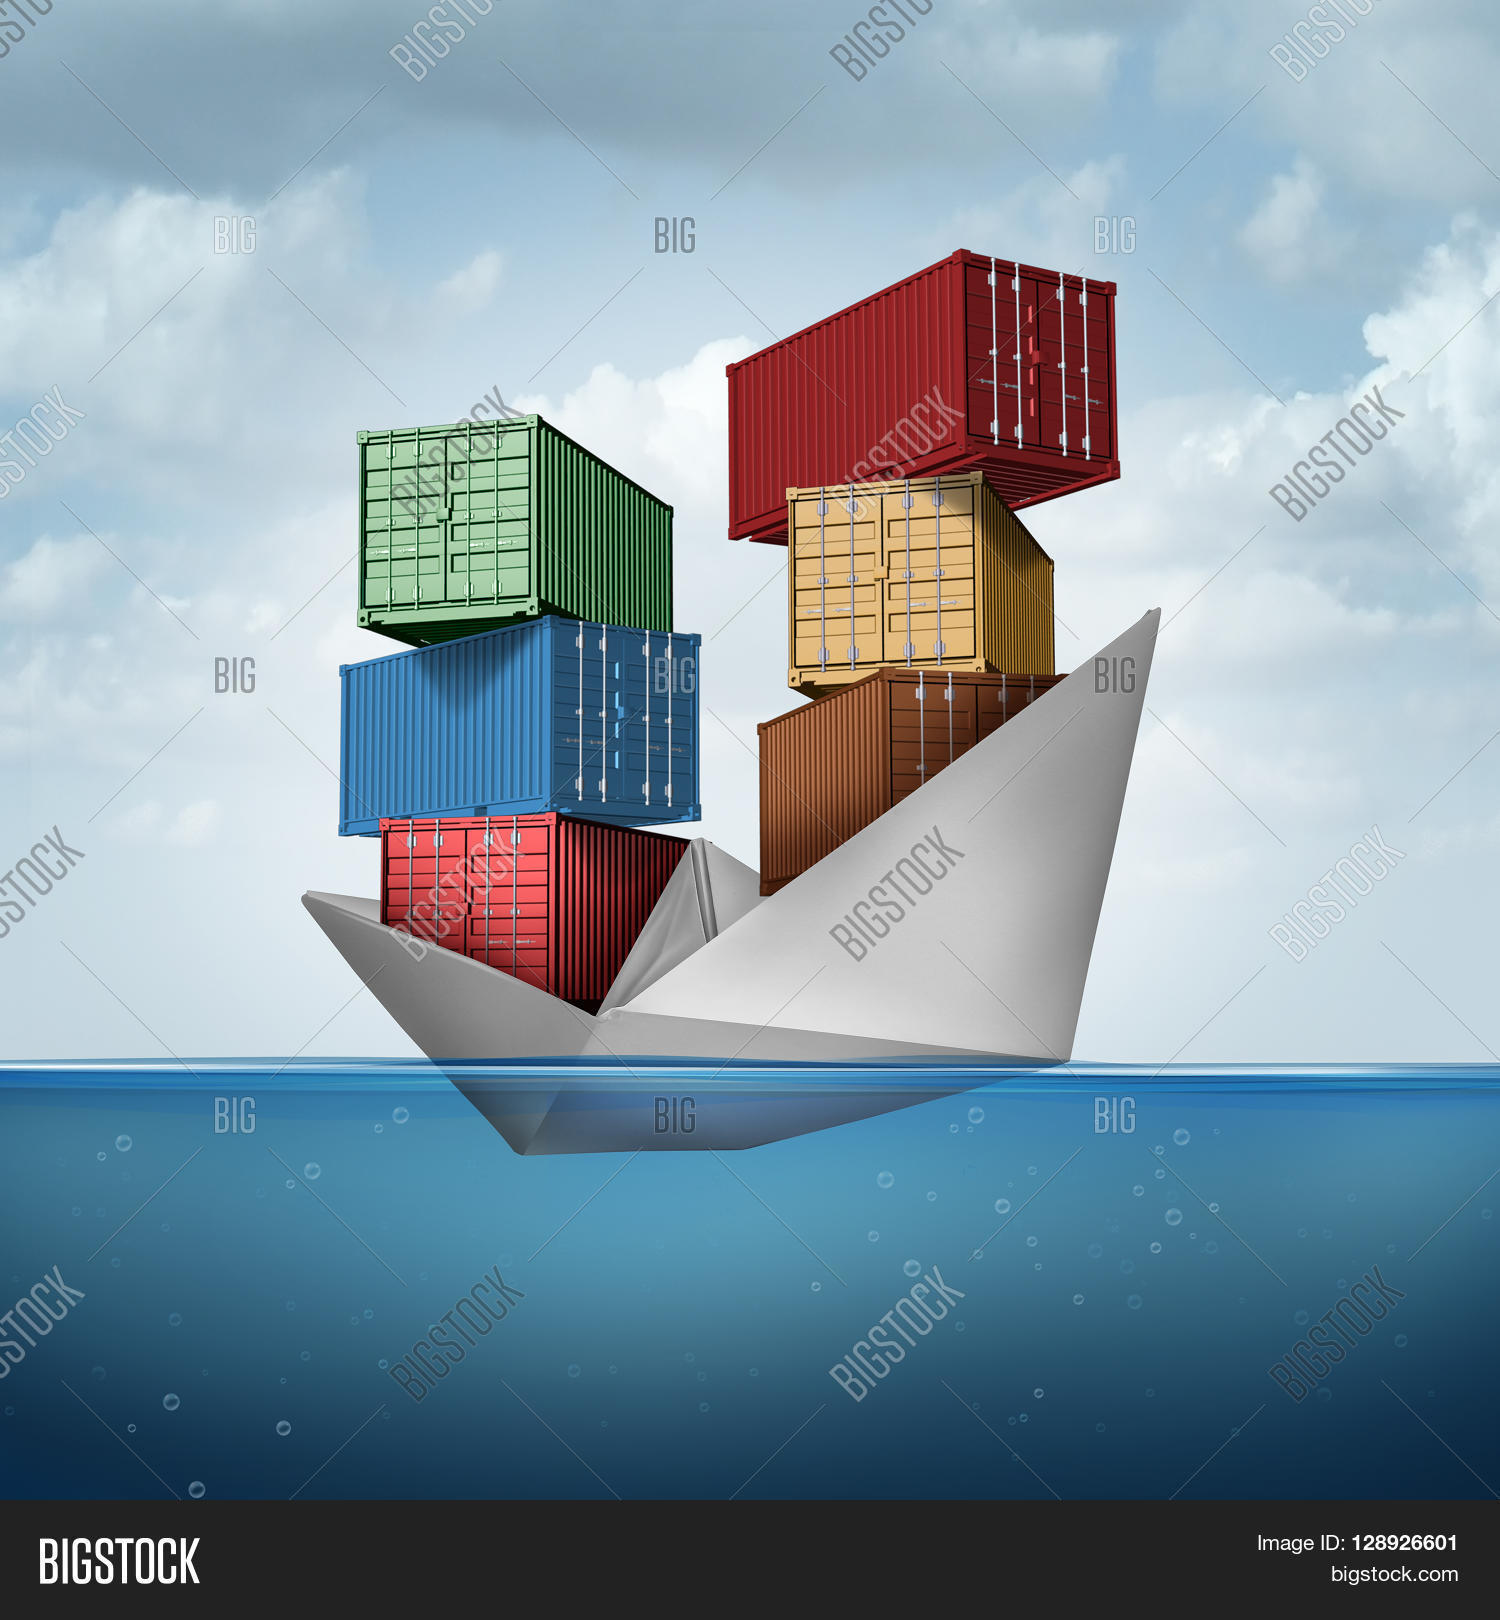 ocean carriers essays Free essays regarding case study jim for download 526 - 550 search best free essays ocean carriers case study overview ocean carriers, inc is a.